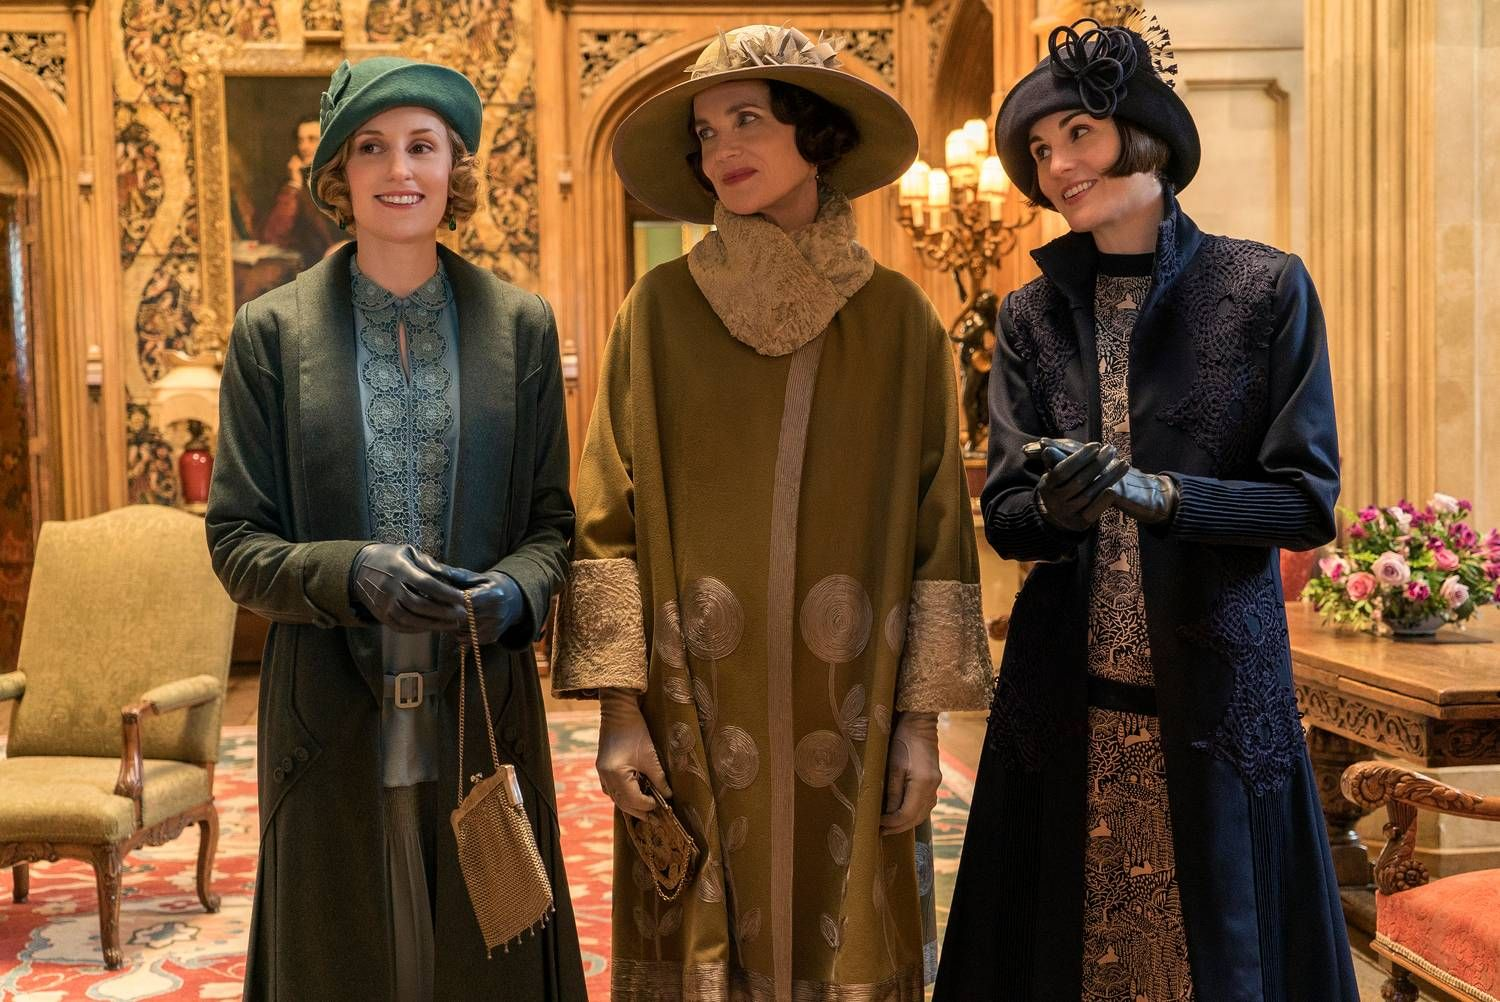 I FILMEN: Fra venstre: Laura Carmichael alias Lady Edith Crawley, Elizabeth McGovern alias Lady Grantham og Michelle Dockery alias Lady Mary Crawley.